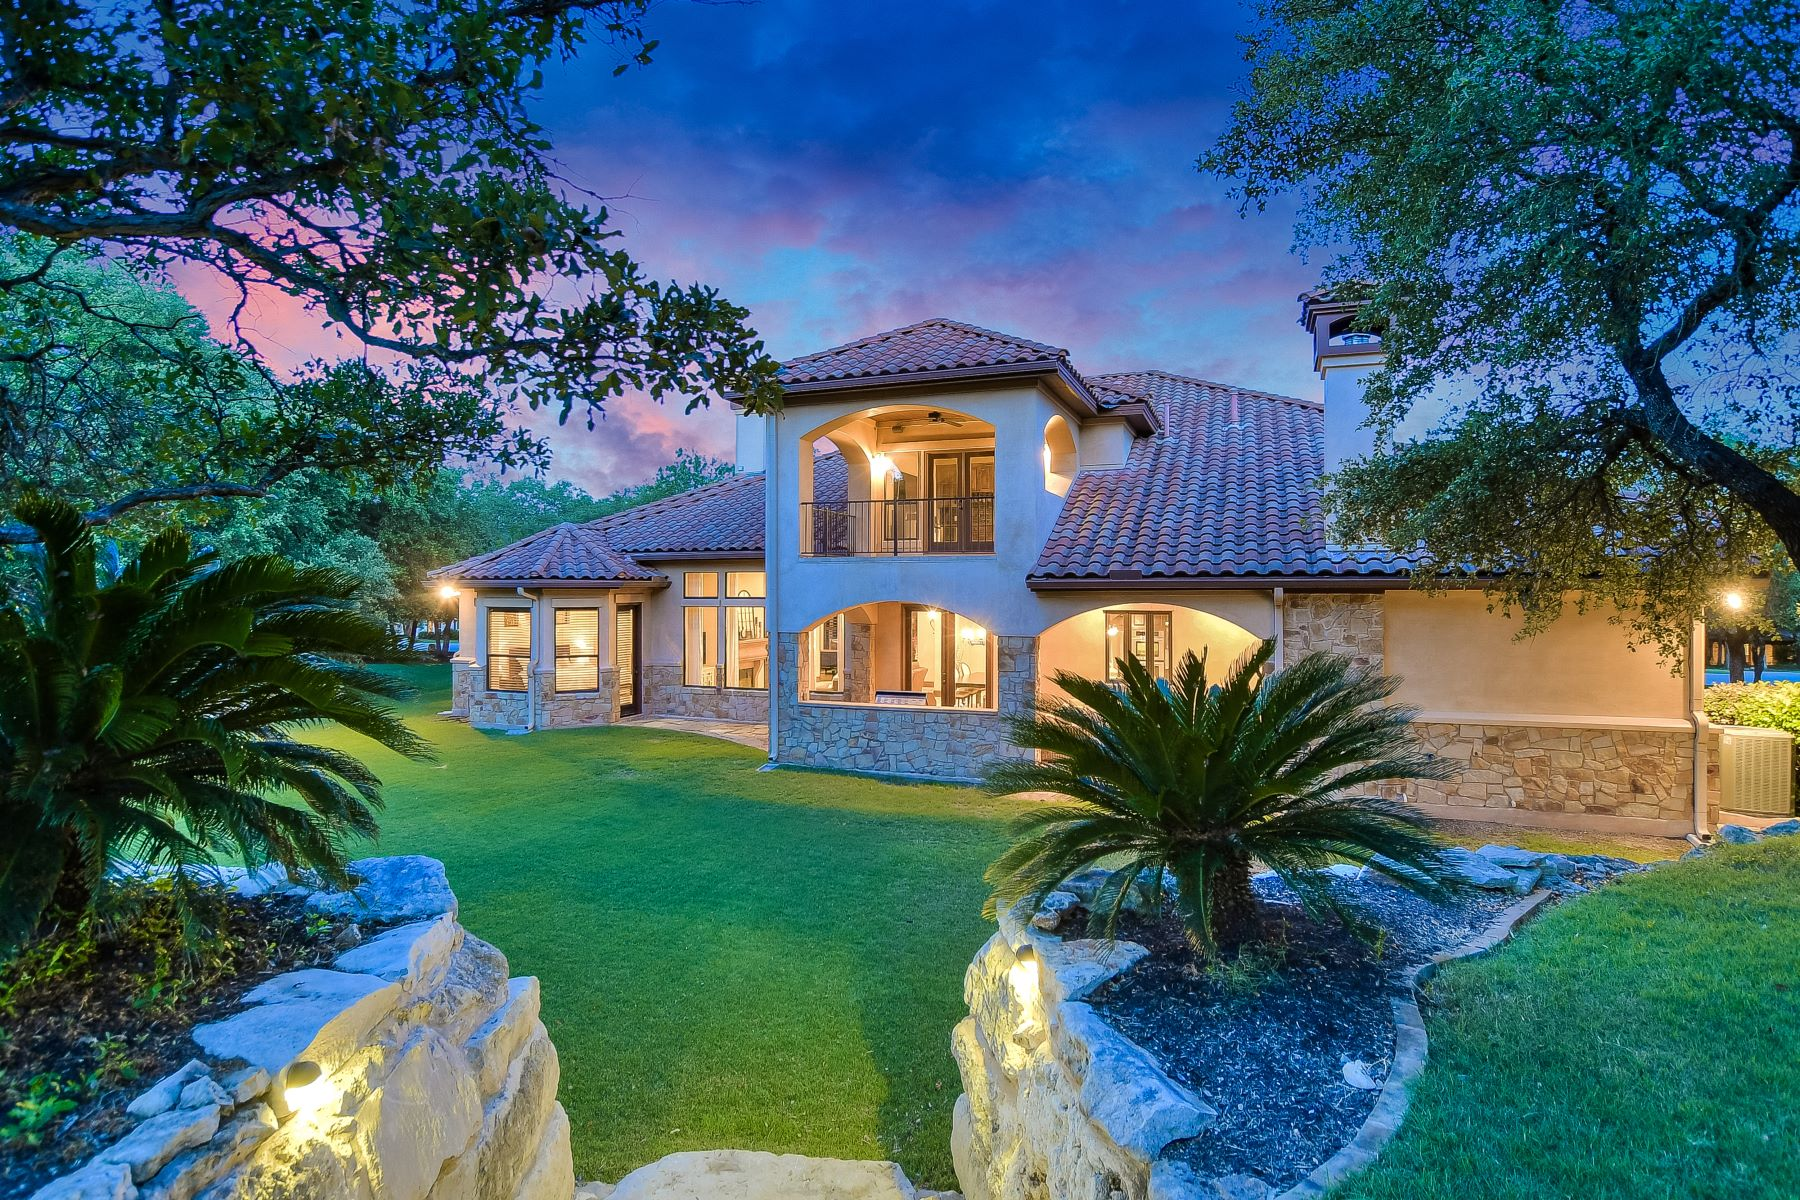 Single Family Homes for Sale at 3703 Good Night Trail, Leander, TX 78641 3703 Good Night Trail Leander, Texas 78641 United States